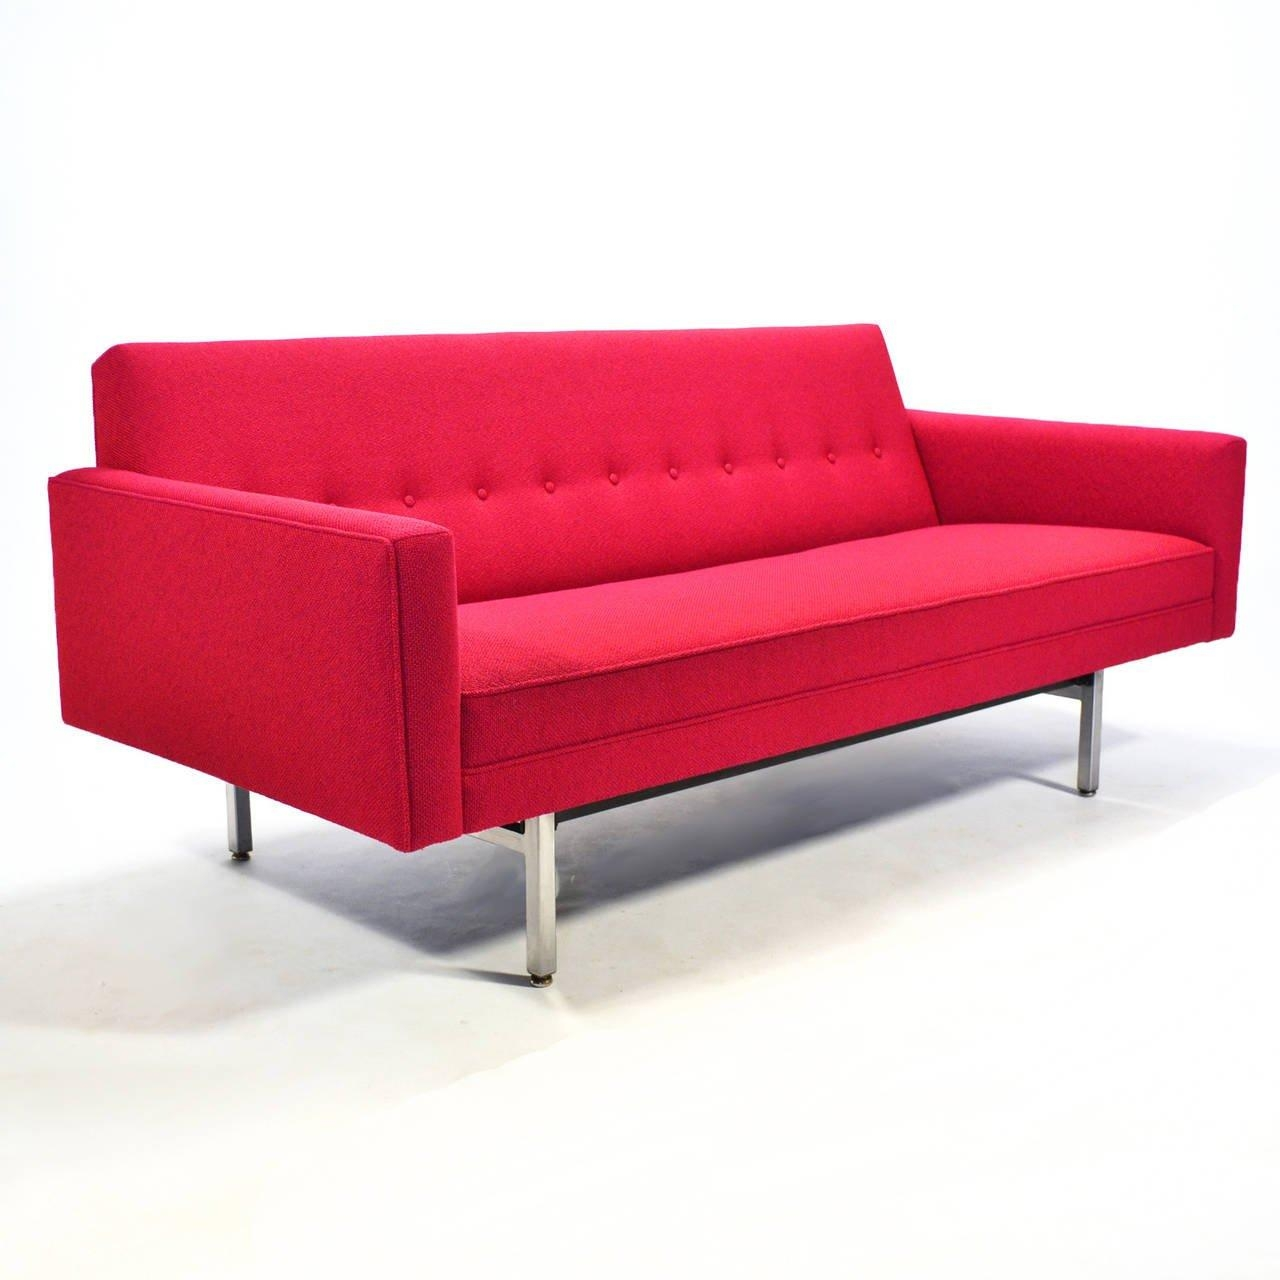 George Nelson Modular Group Sofa For Sale At 1Stdibs within George Nelson Sofas